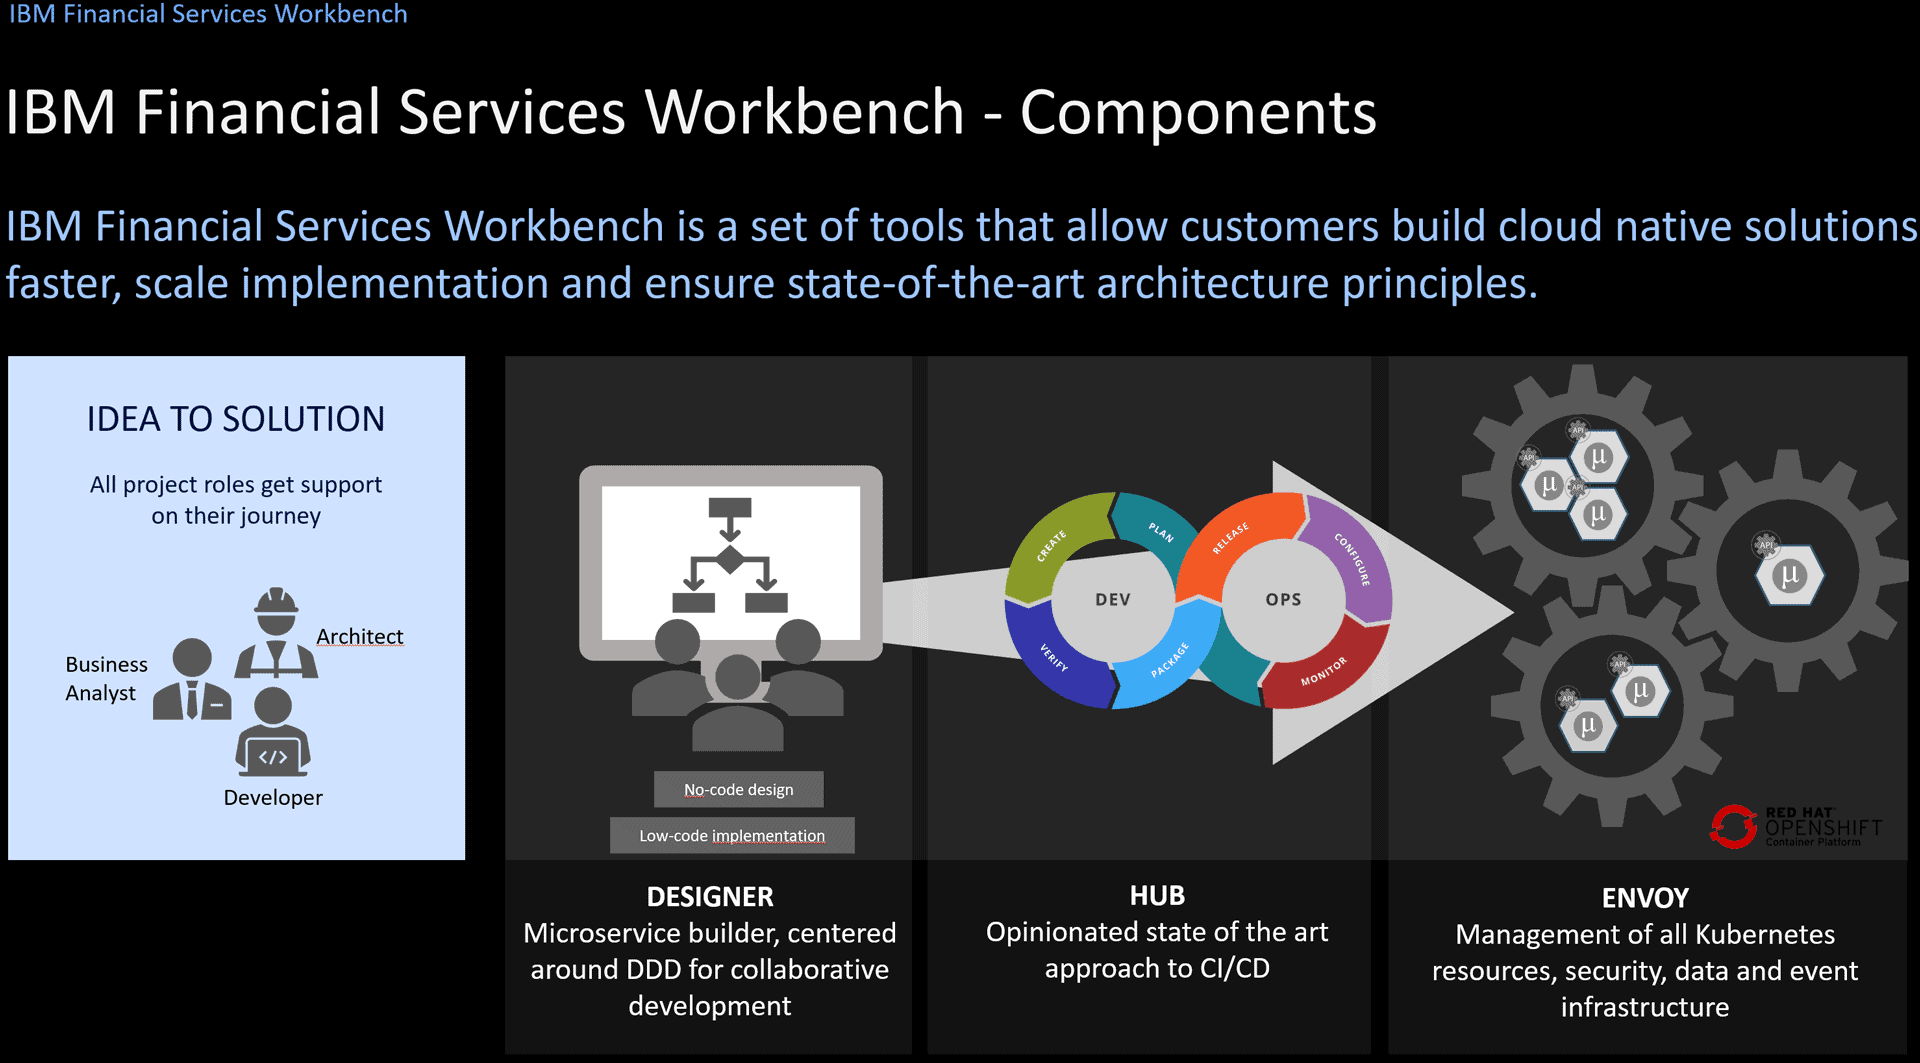 IBM Financial Services Workbench